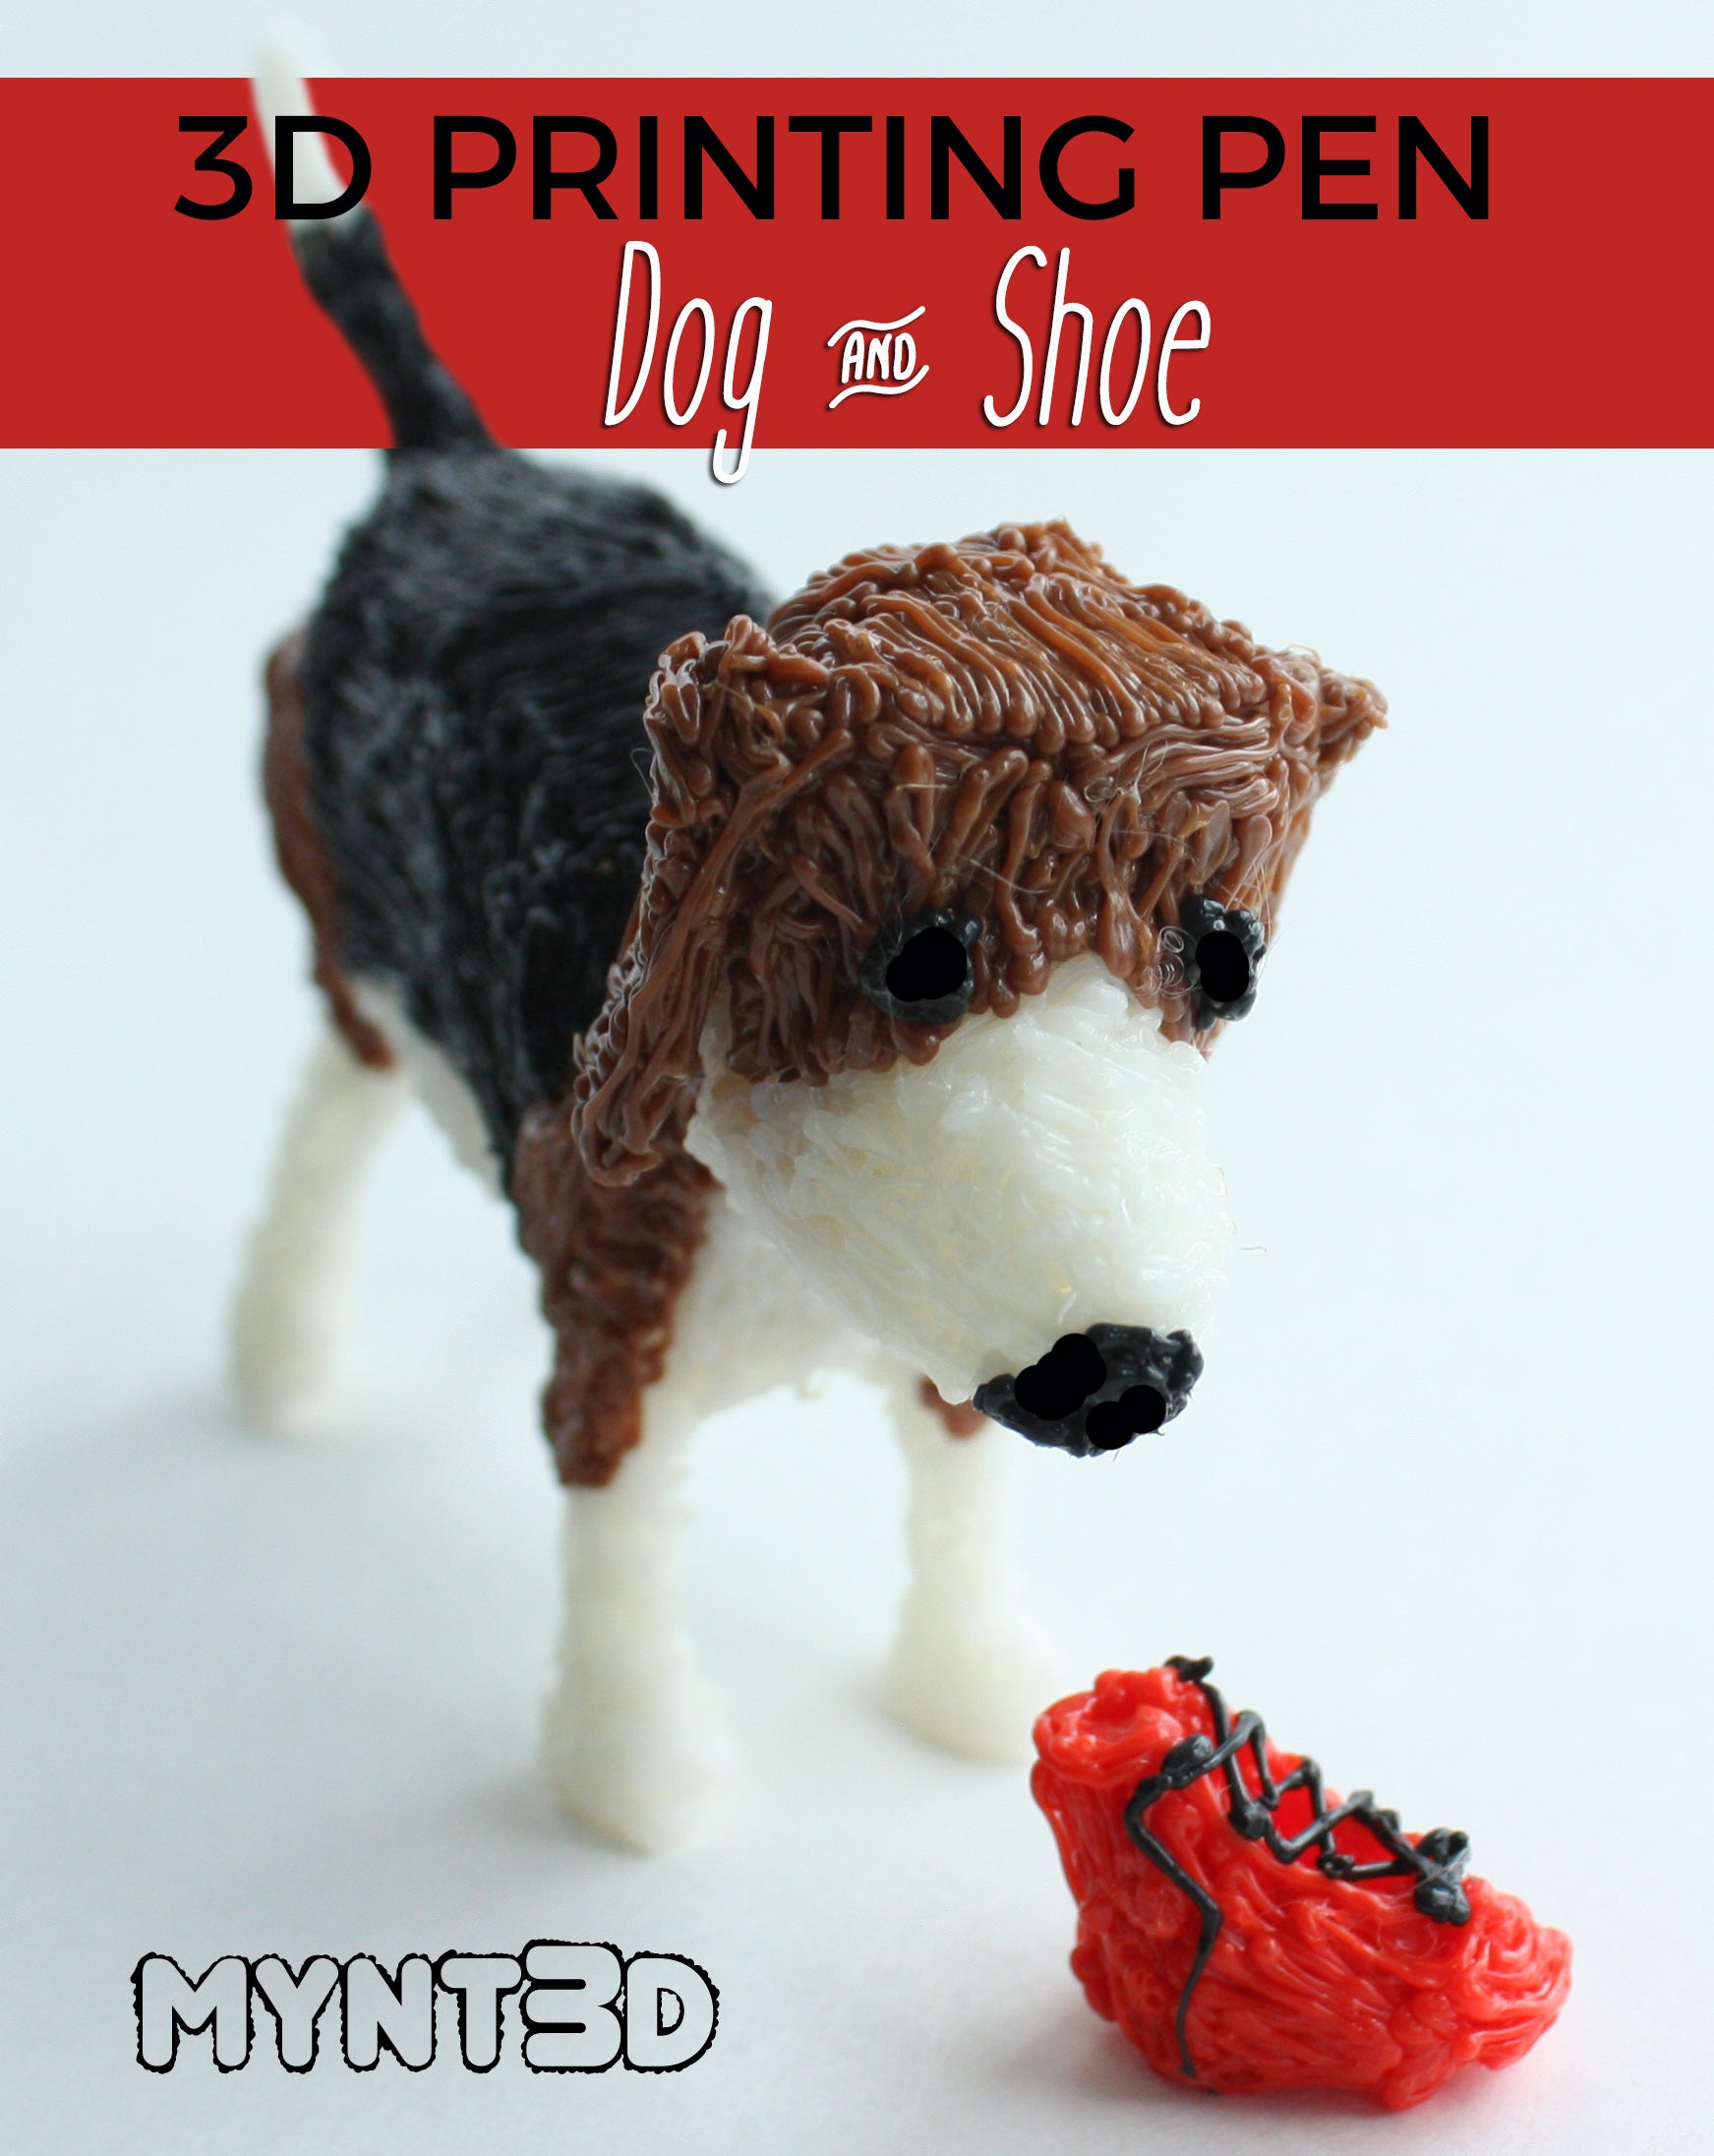 How to Make a Dog with a 3D Pen